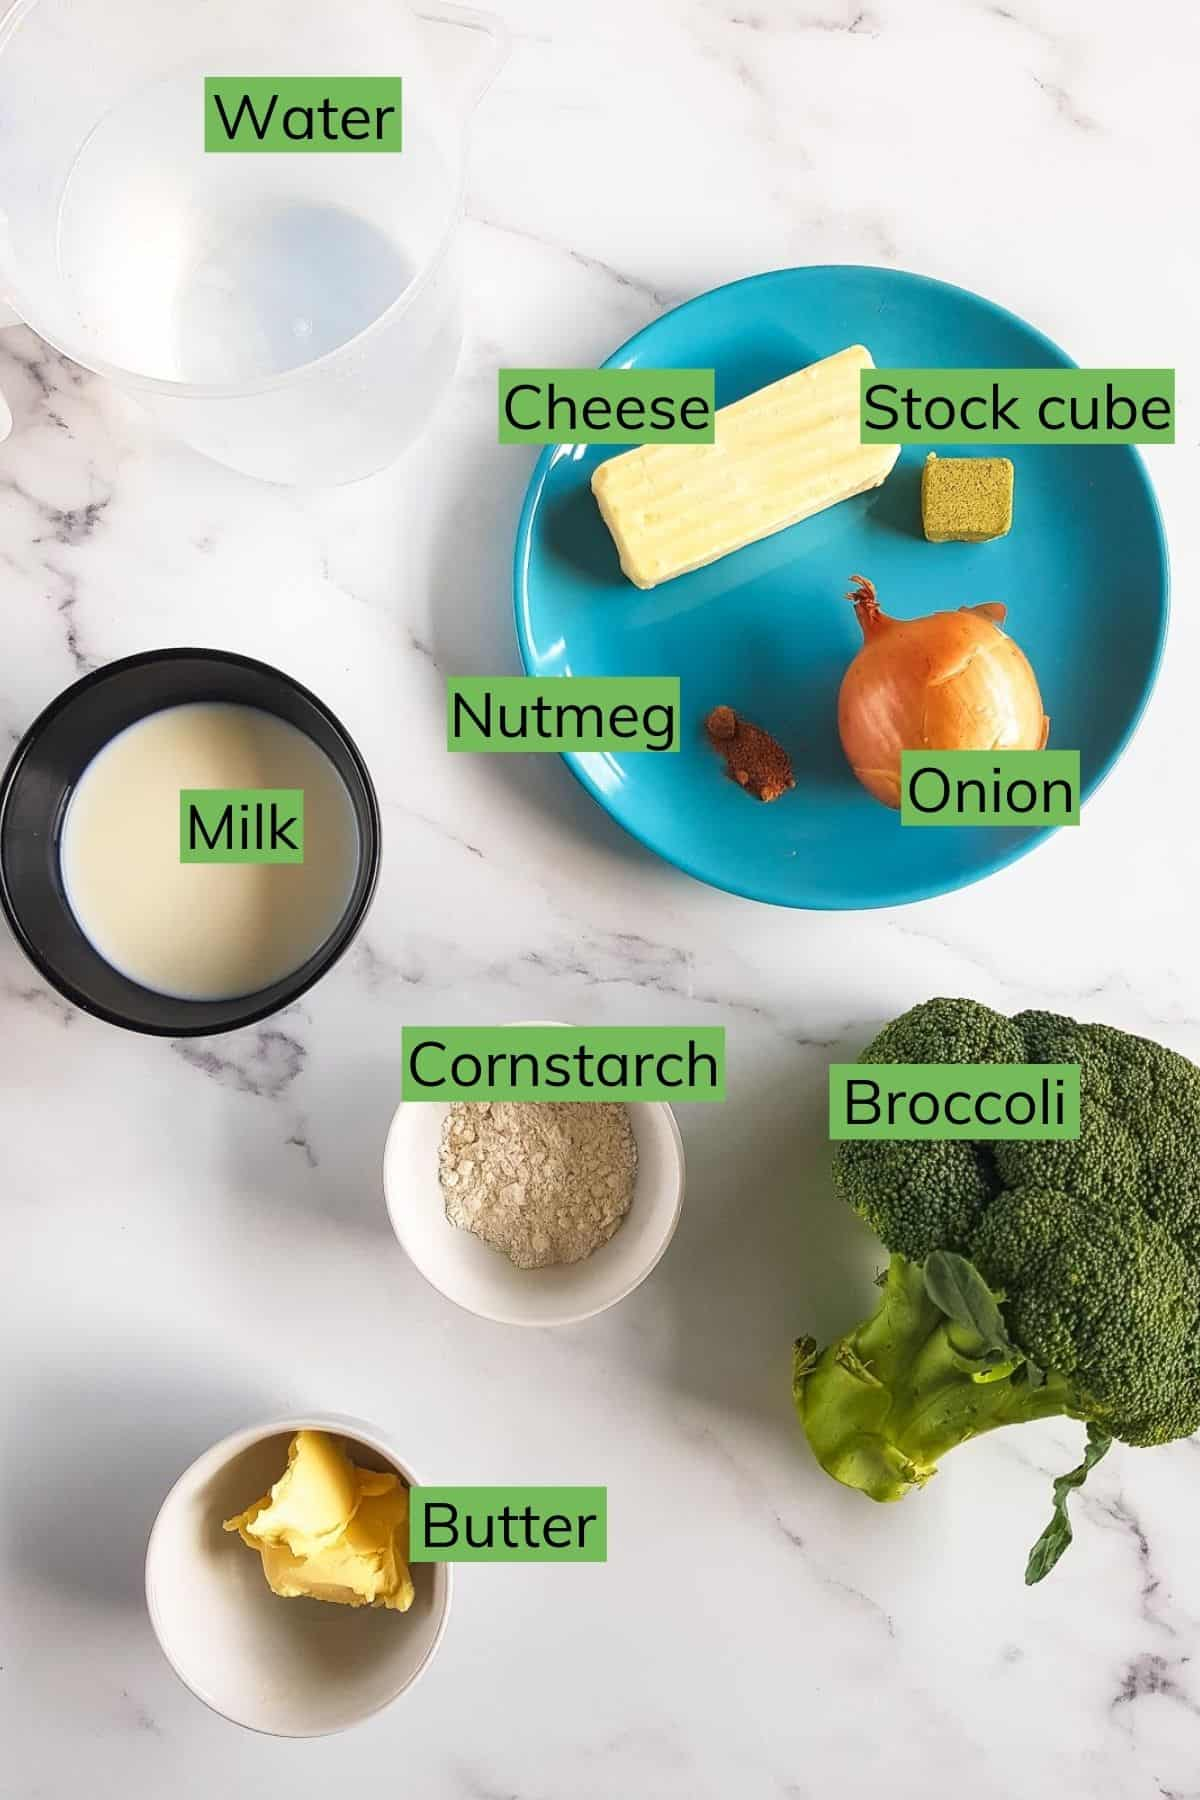 The ingredients for broccoli cheese soup laid out on a table.